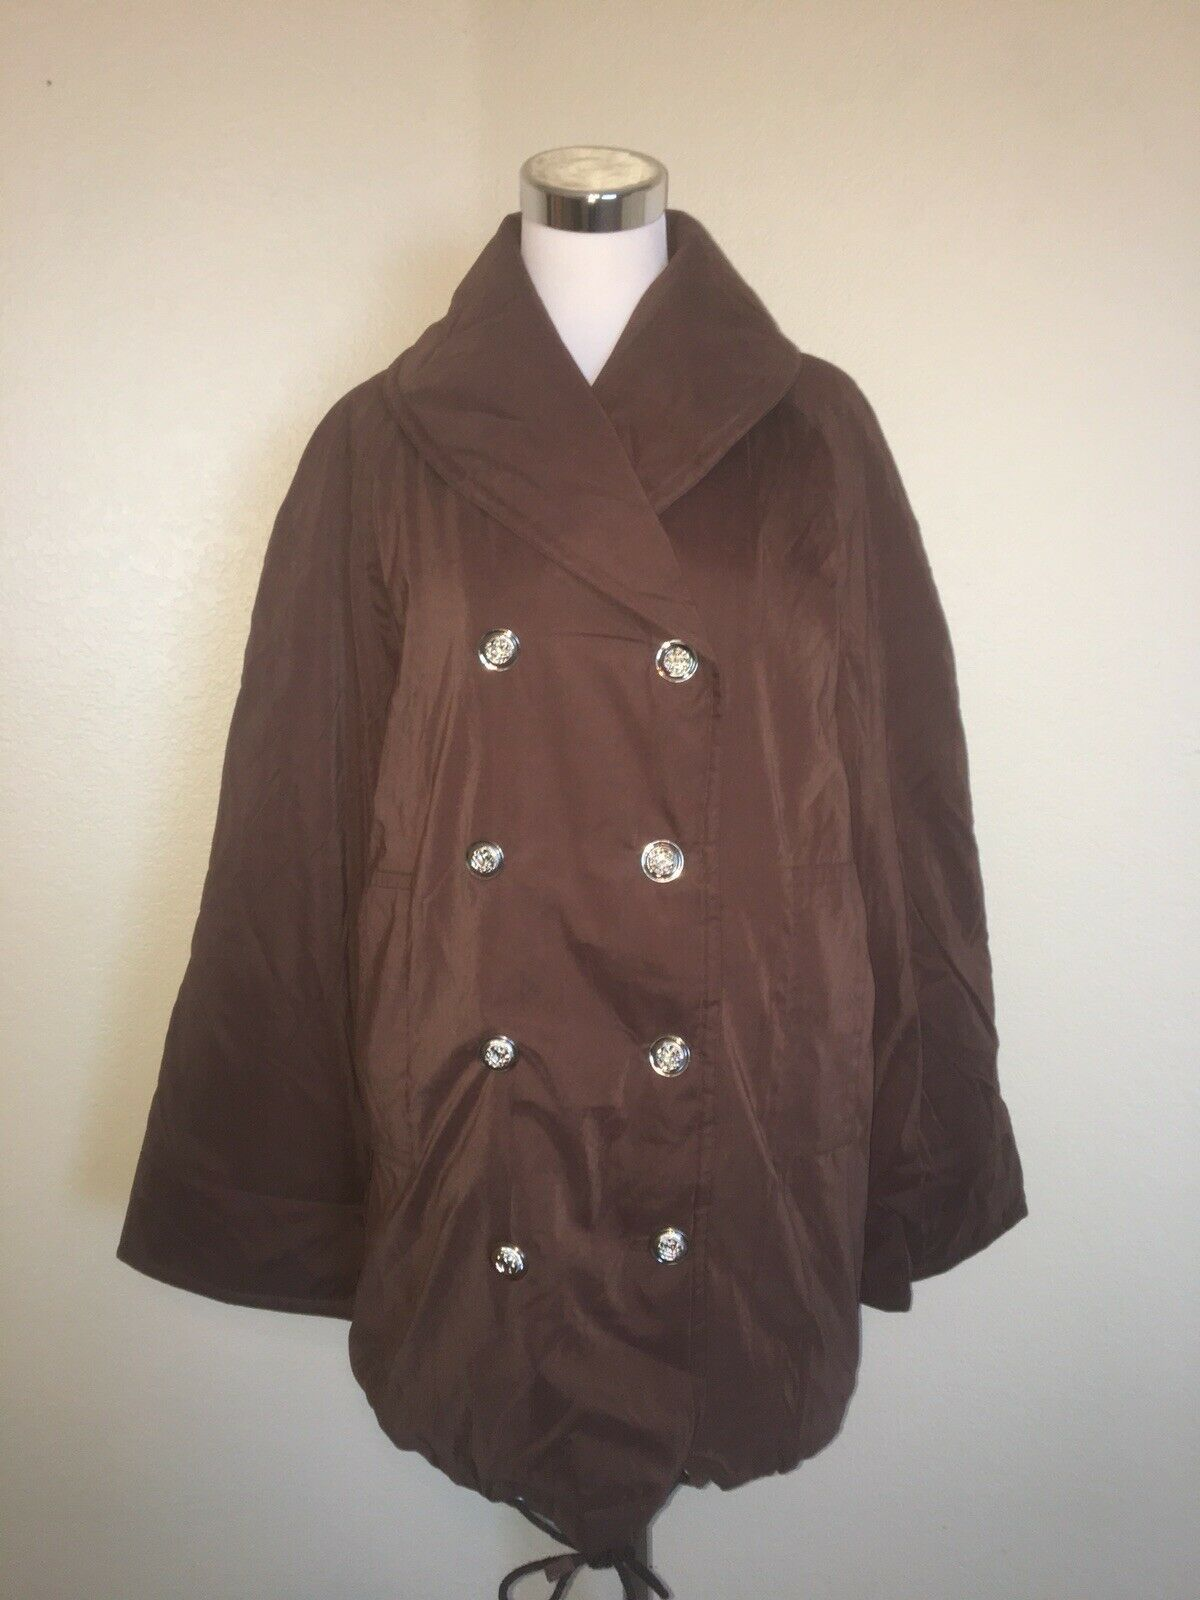 JEAN LOUIS SCHERRER PARIS RAINWEAR BROWN PUFFER COAT  SIZE- XL